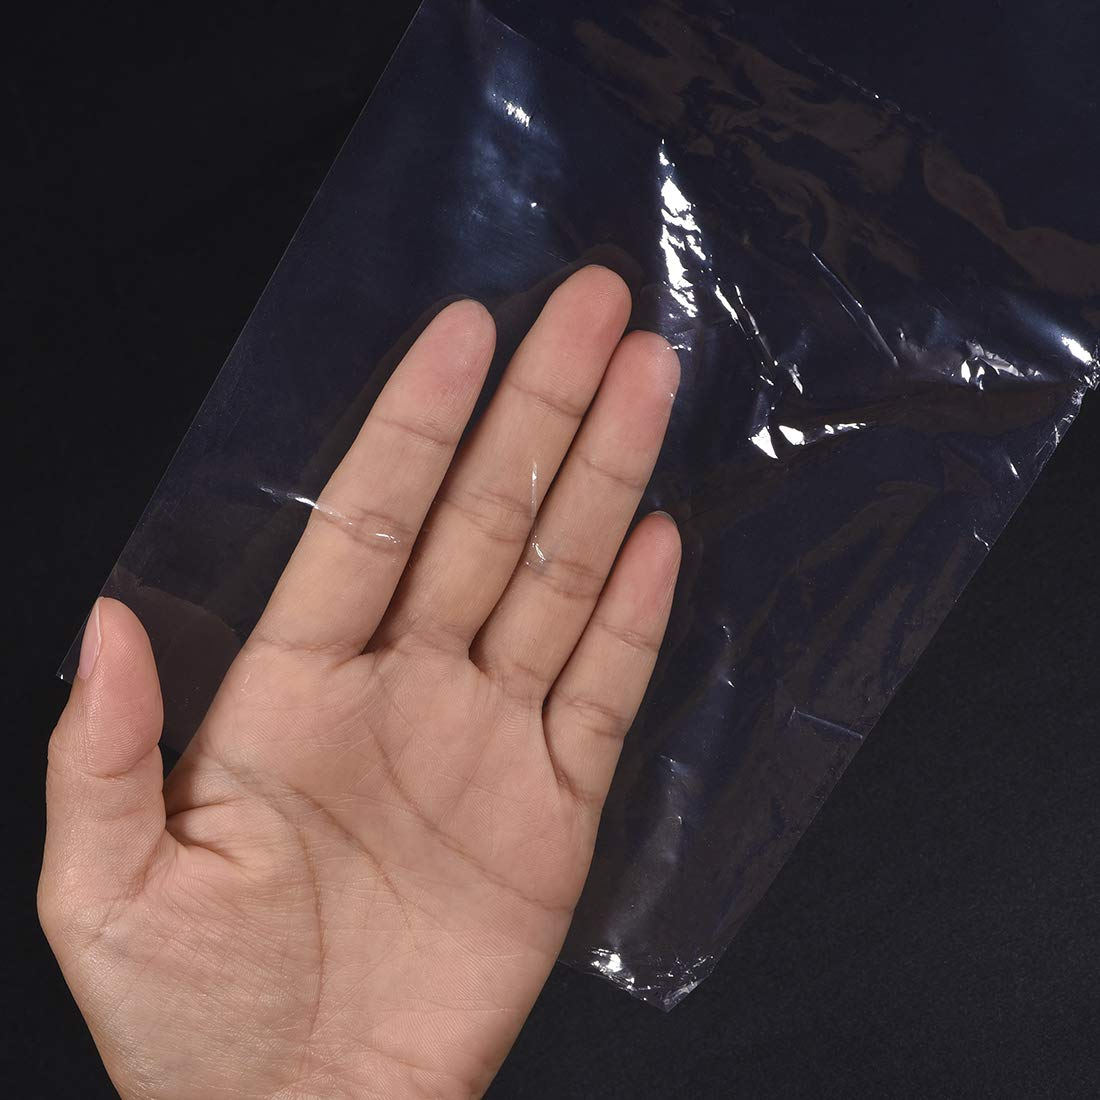 uxcell Shrink Bags 20x16 inch 100pcs Shrinkable Wrapping Packaging Bags Industrial Packaging Sealer Bags PVC Heat Shrink Wrap Bags